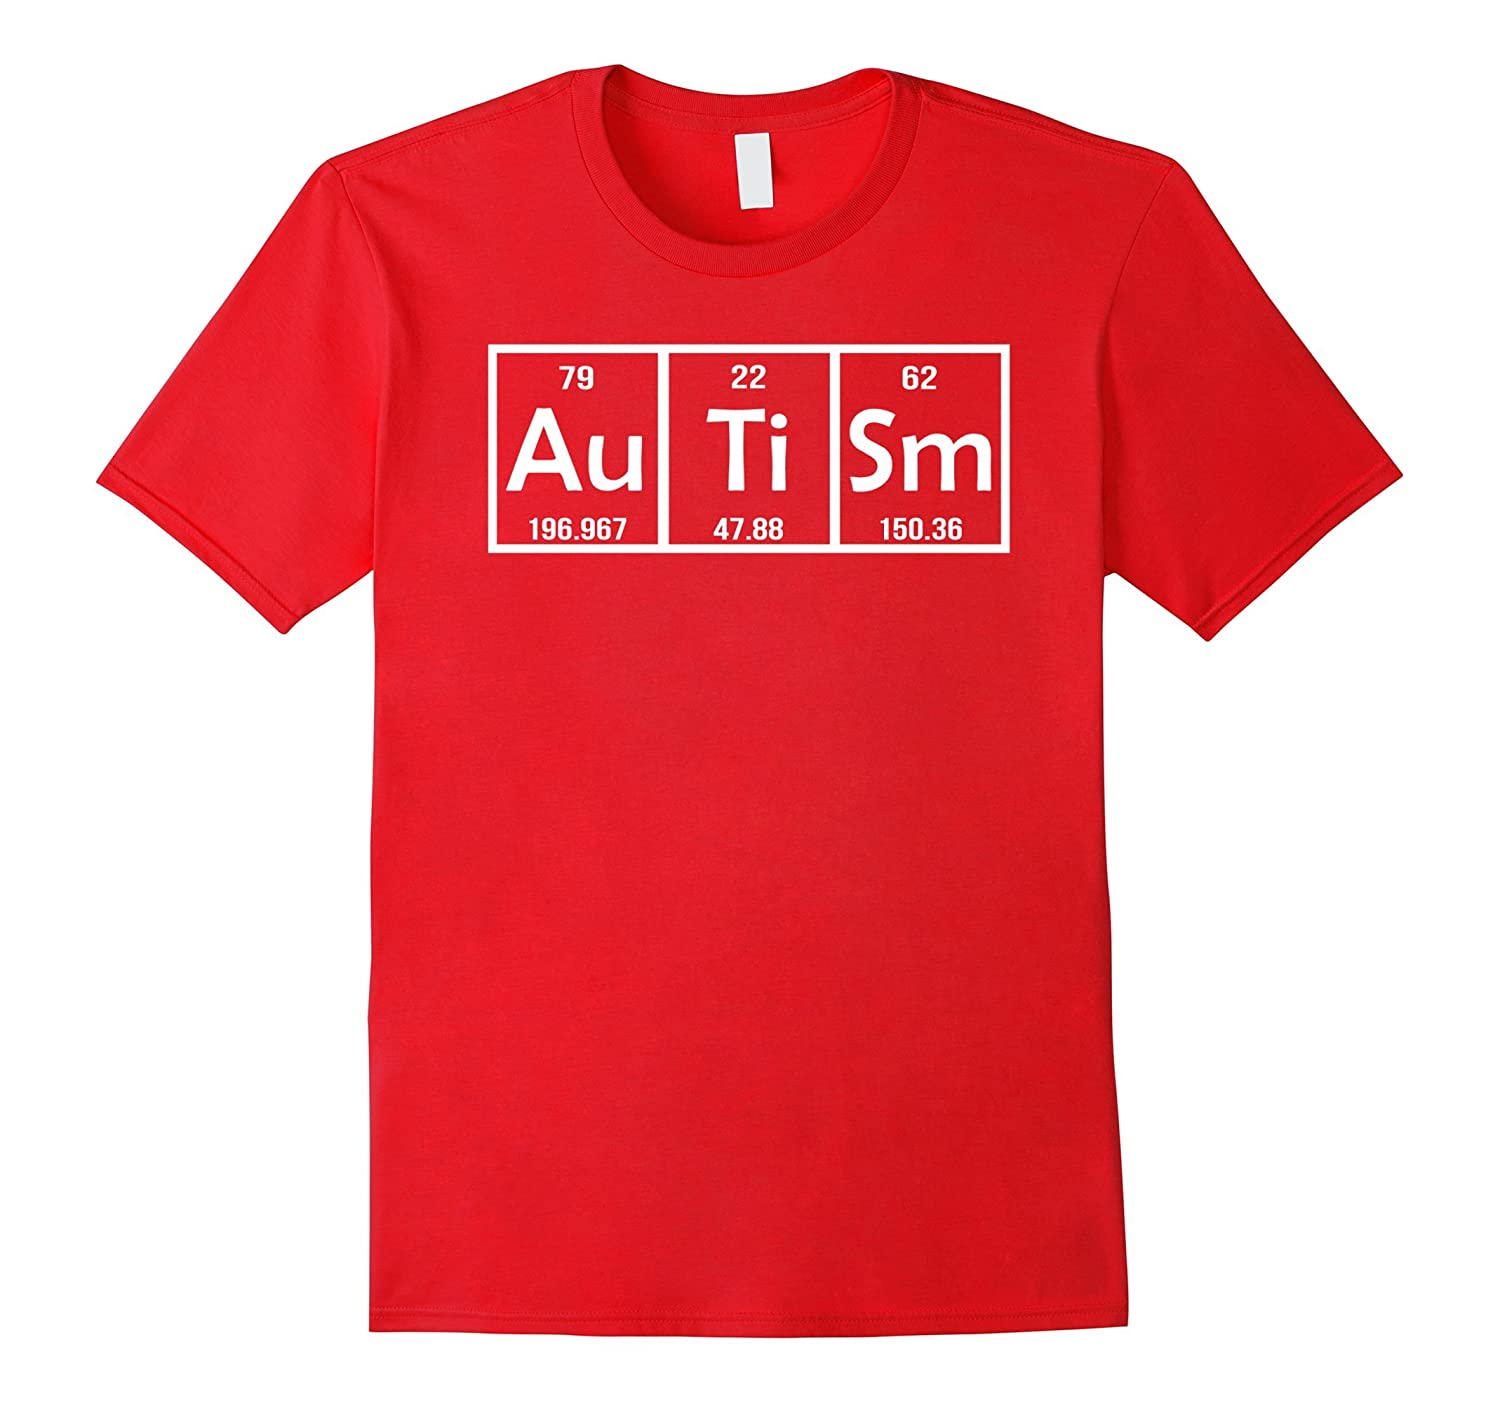 Autism gifts for adults funny periodic table t shirt goatstee autism gifts for adults funny periodic table t shirt urtaz Images